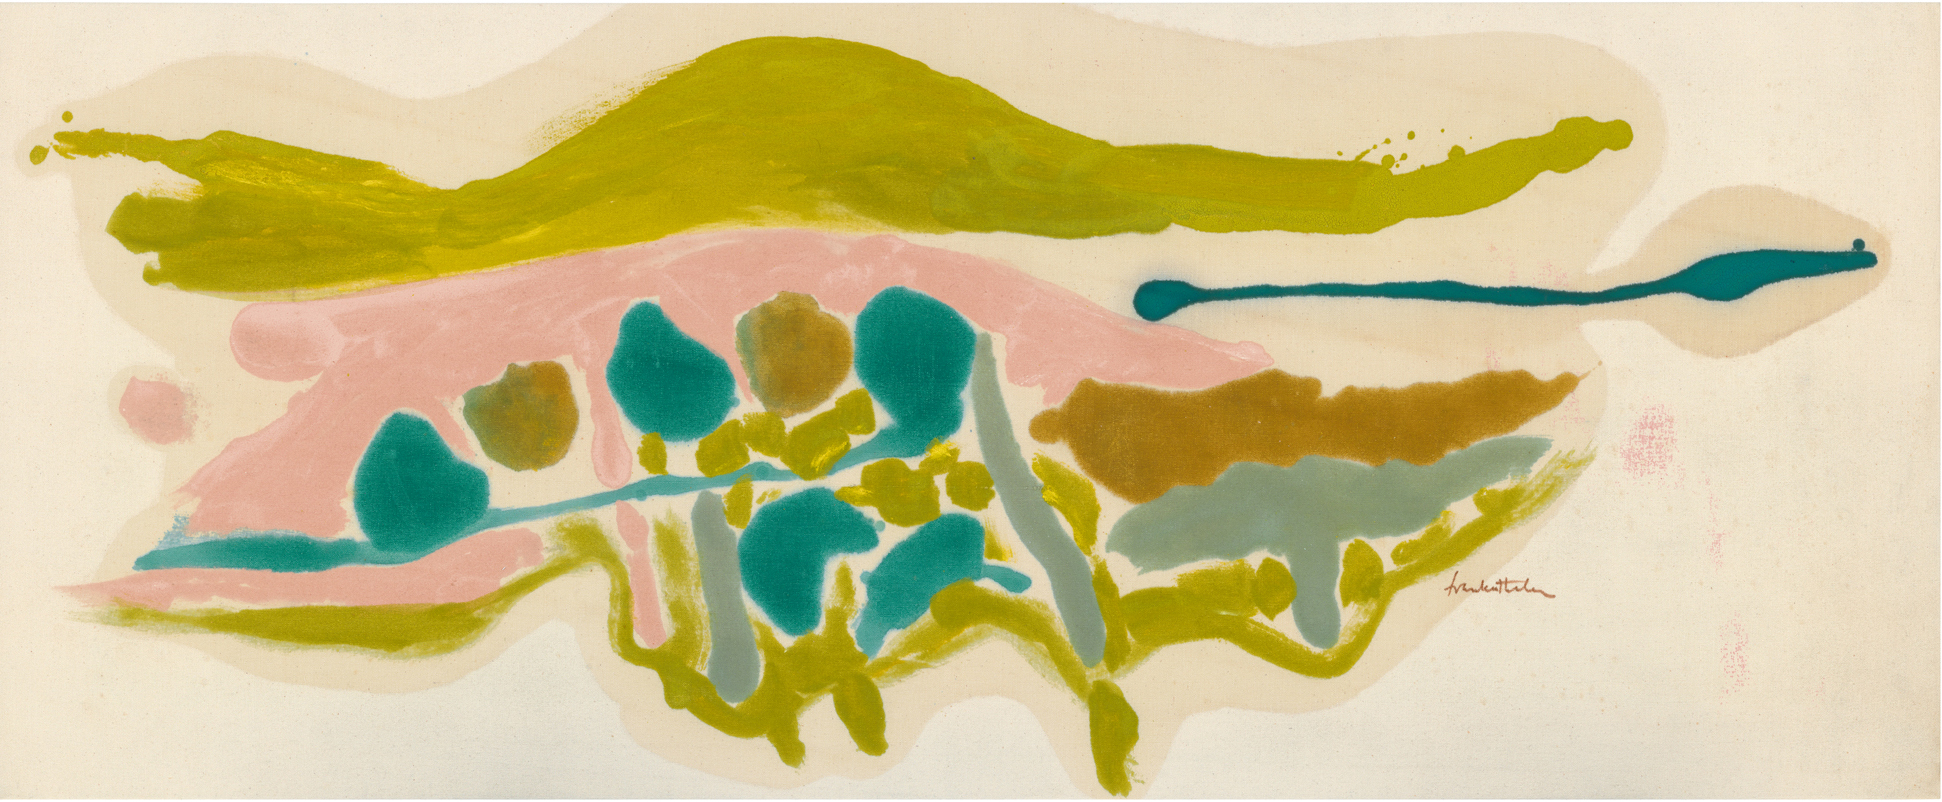 Helen Frankenthaler,Pink Field, 1962, acrylic on canvas,23 3/4 × 58 inches (60.3 × 147.3 cm)© 2016 Helen Frankenthaler Foundation, Inc./Artists Rights Society (ARS), New York.Photo by Rob McKeever